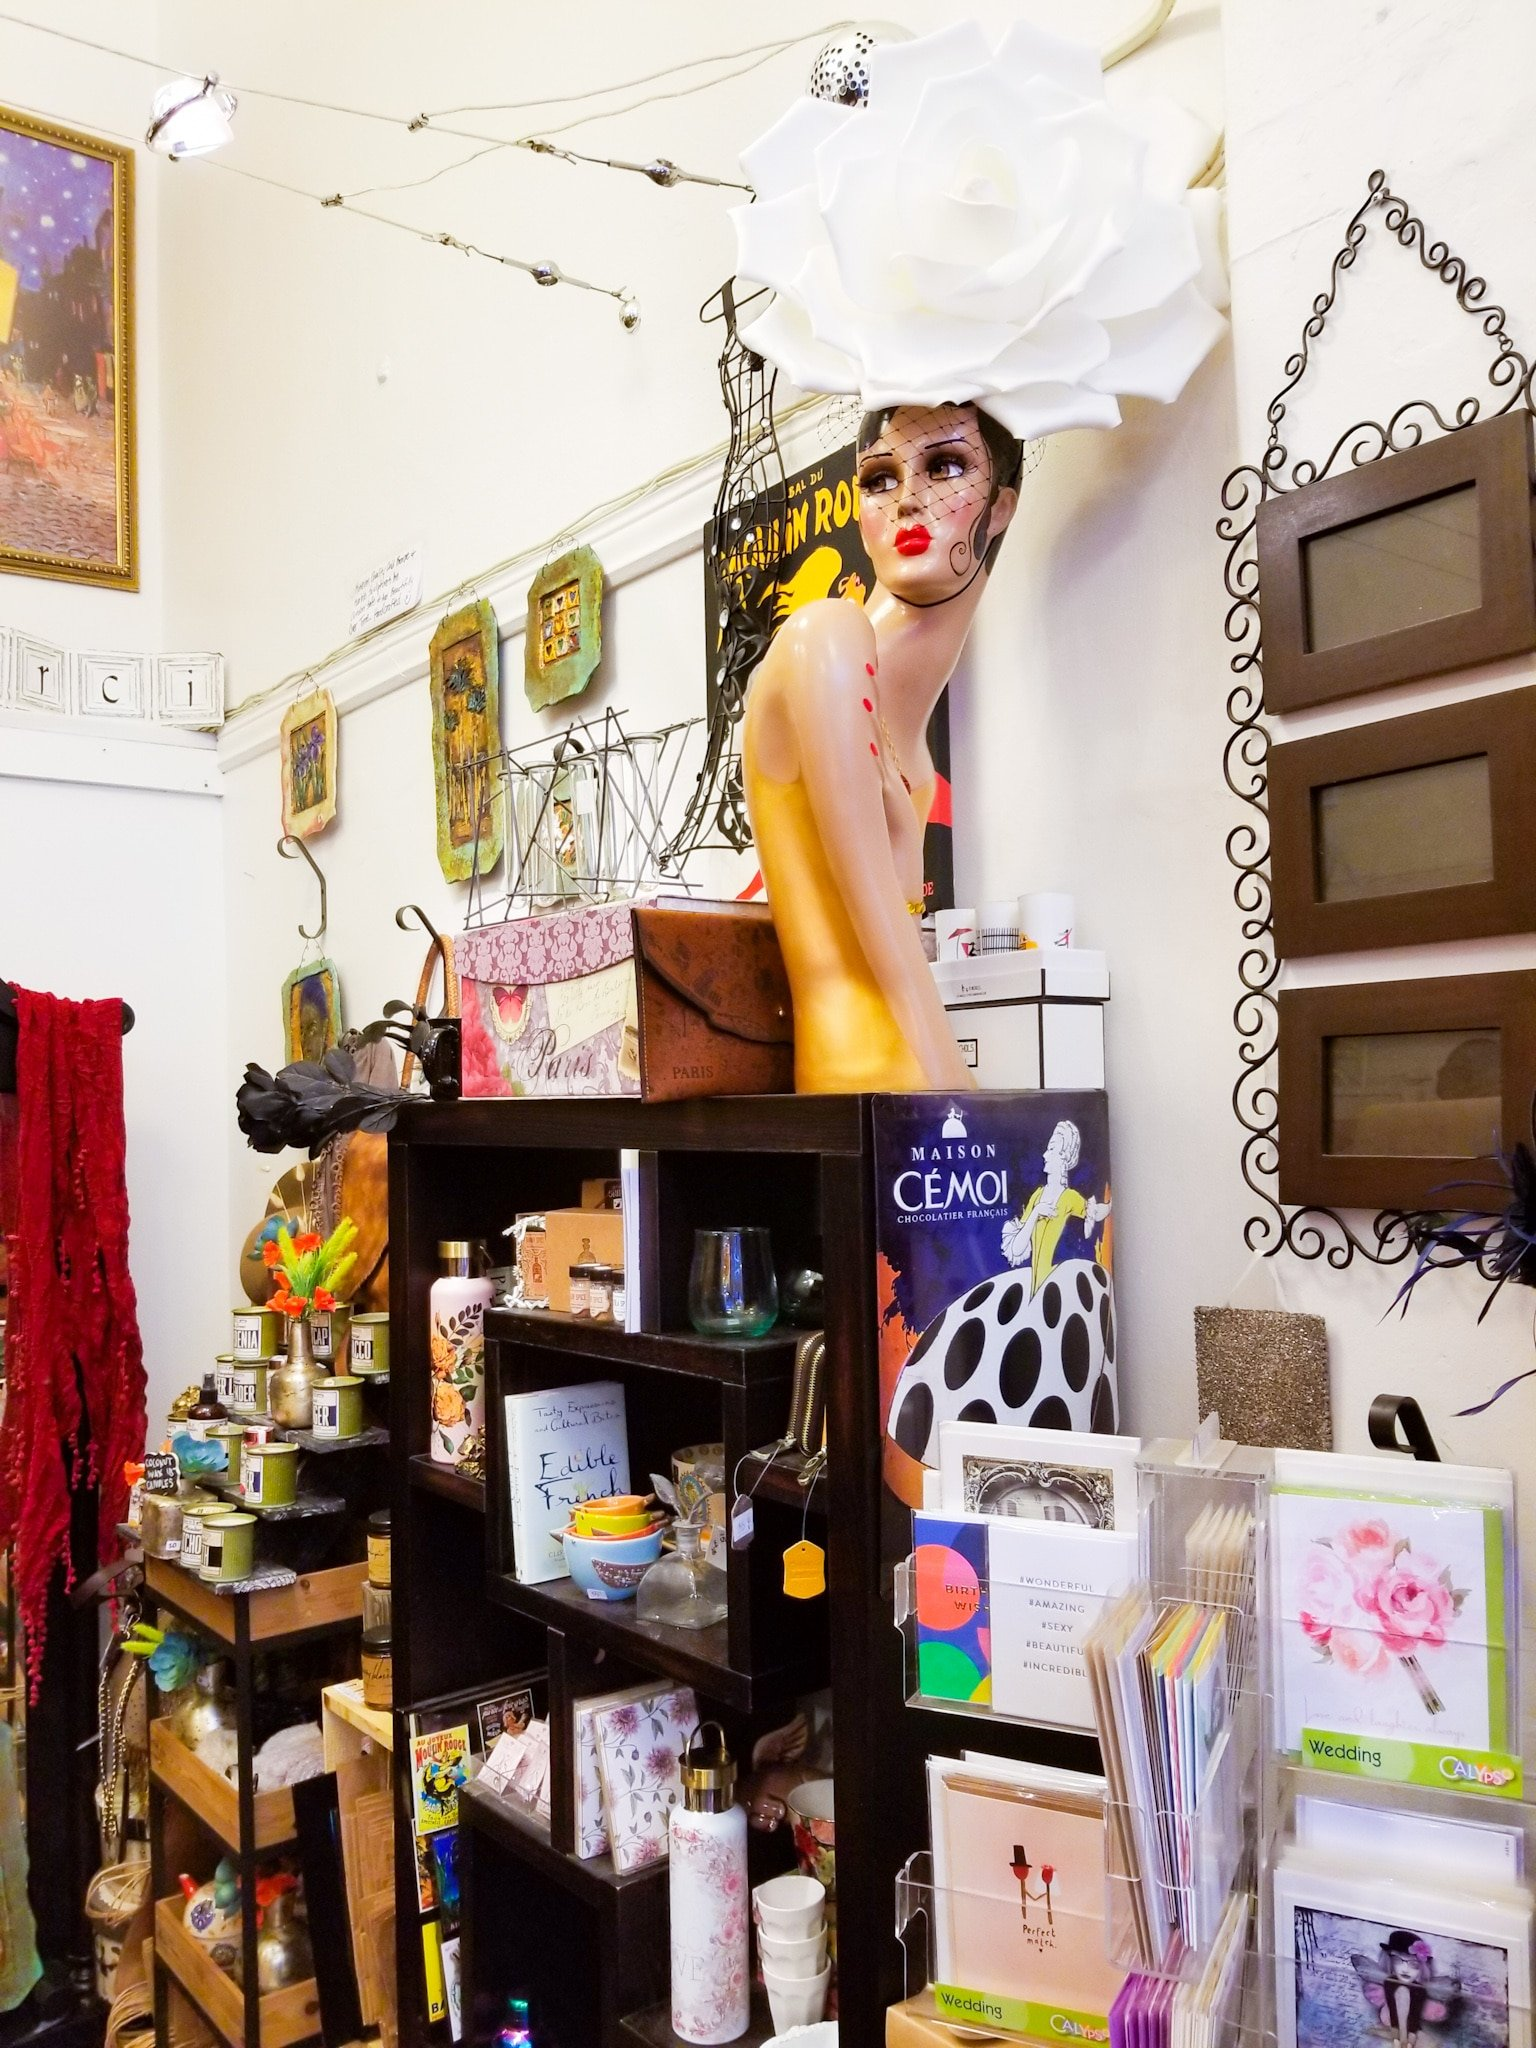 Oo La La Gifts & Accessories in Downtown Oakland